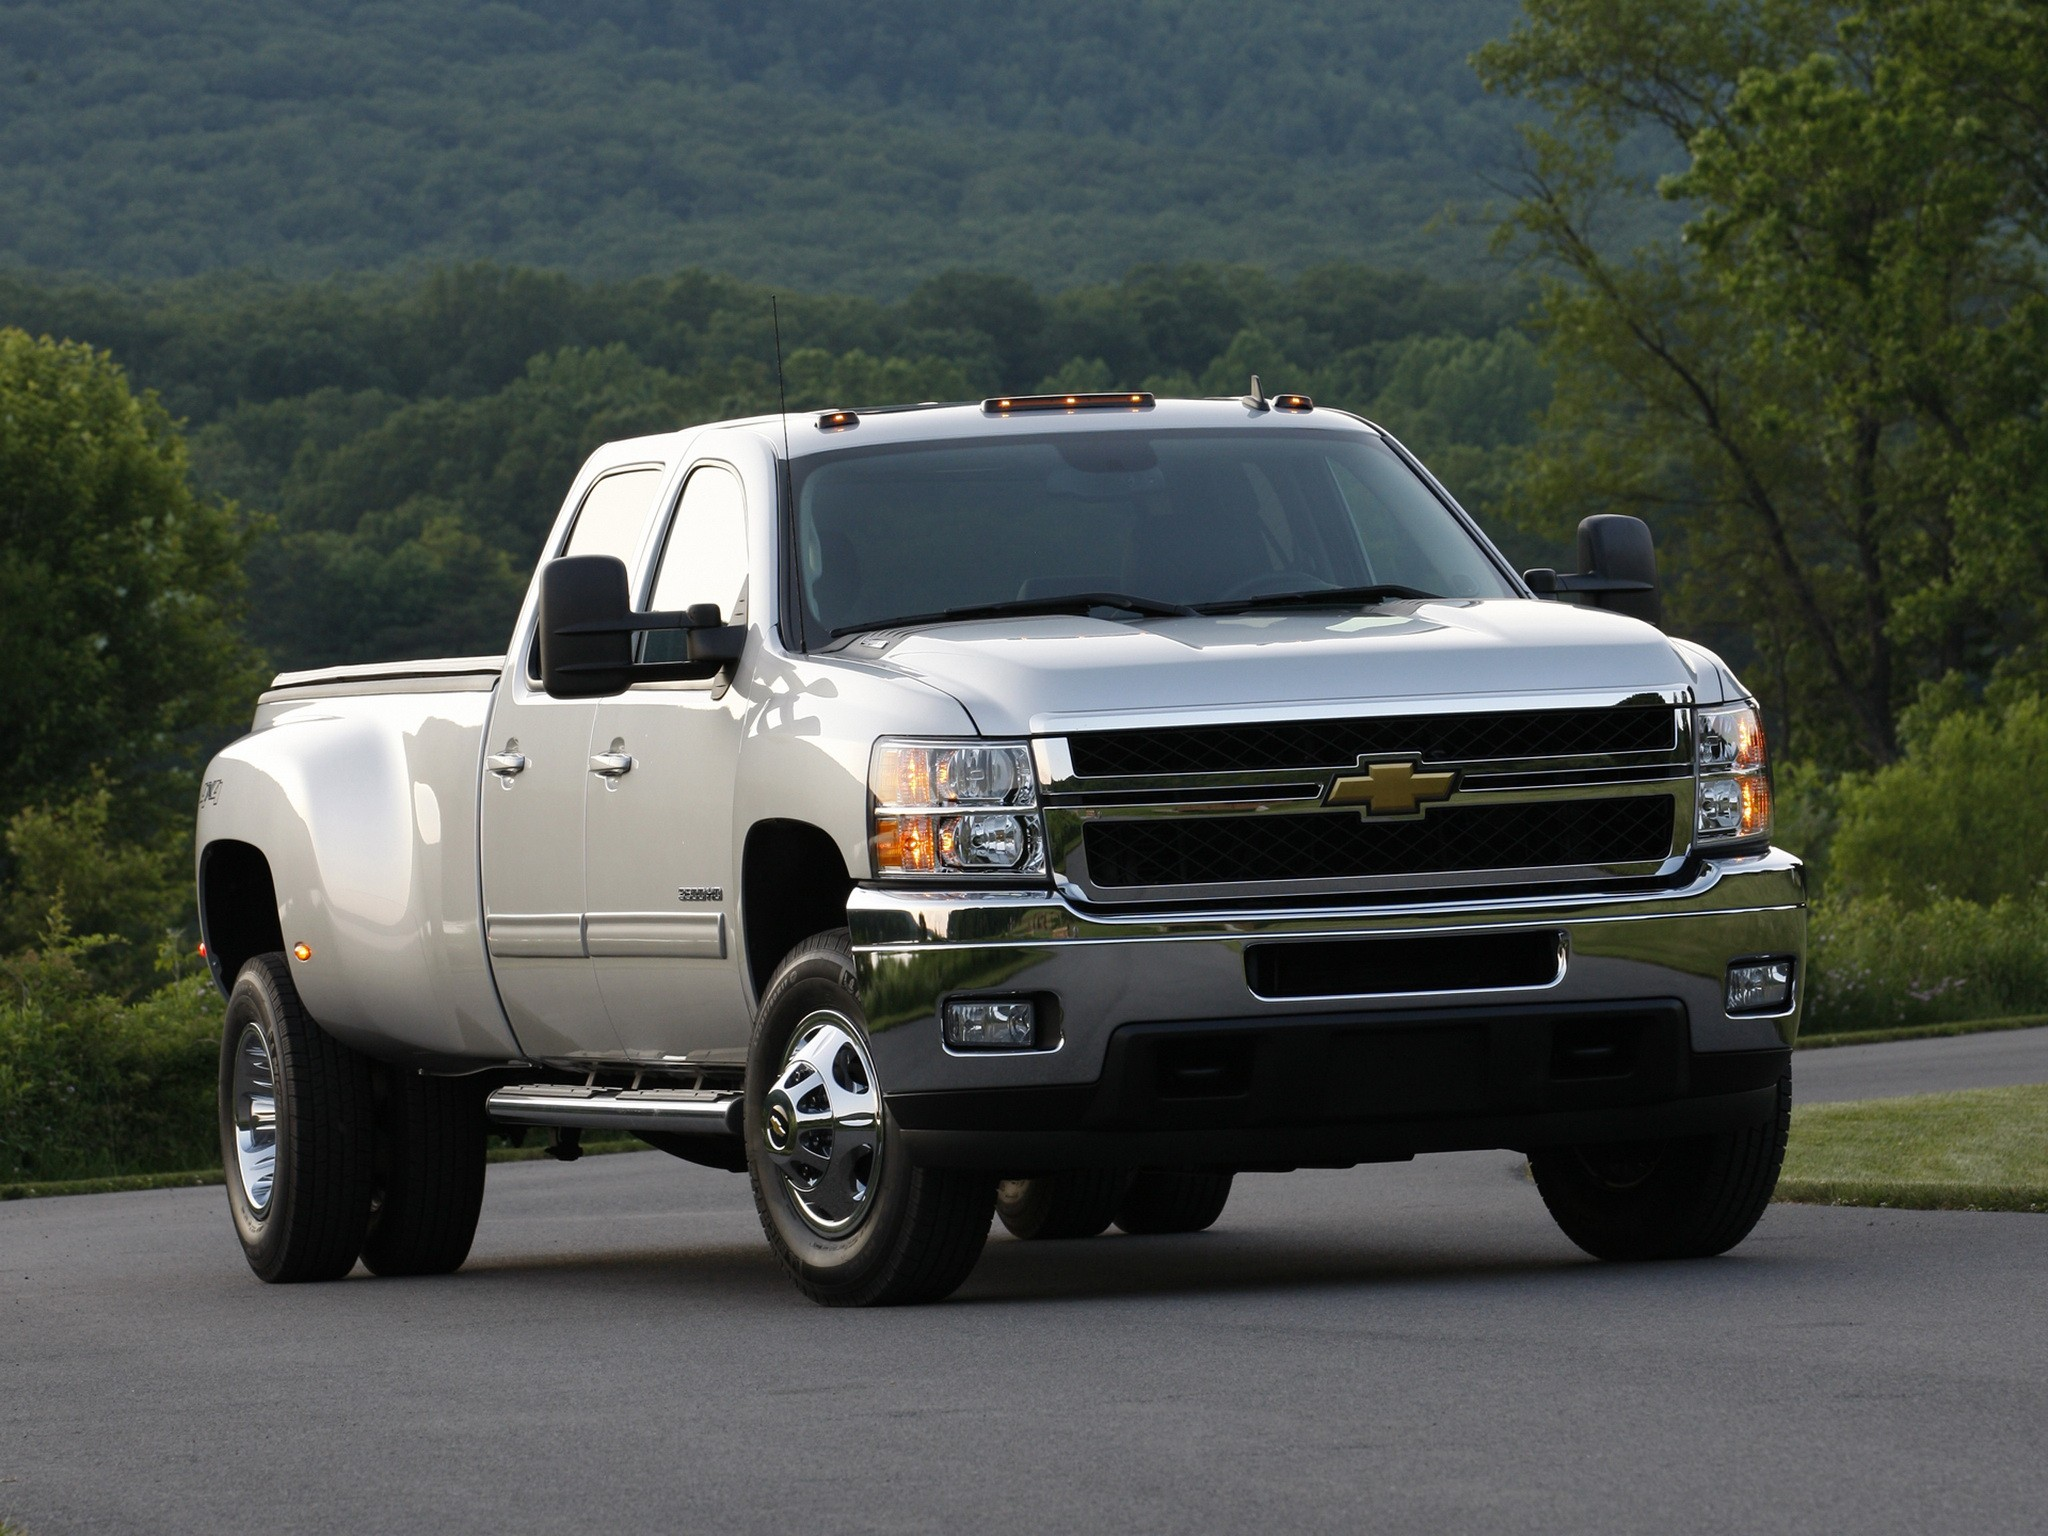 CHEVROLET Silverado 3500HD Crew Cab specs & photos - 2008 ...